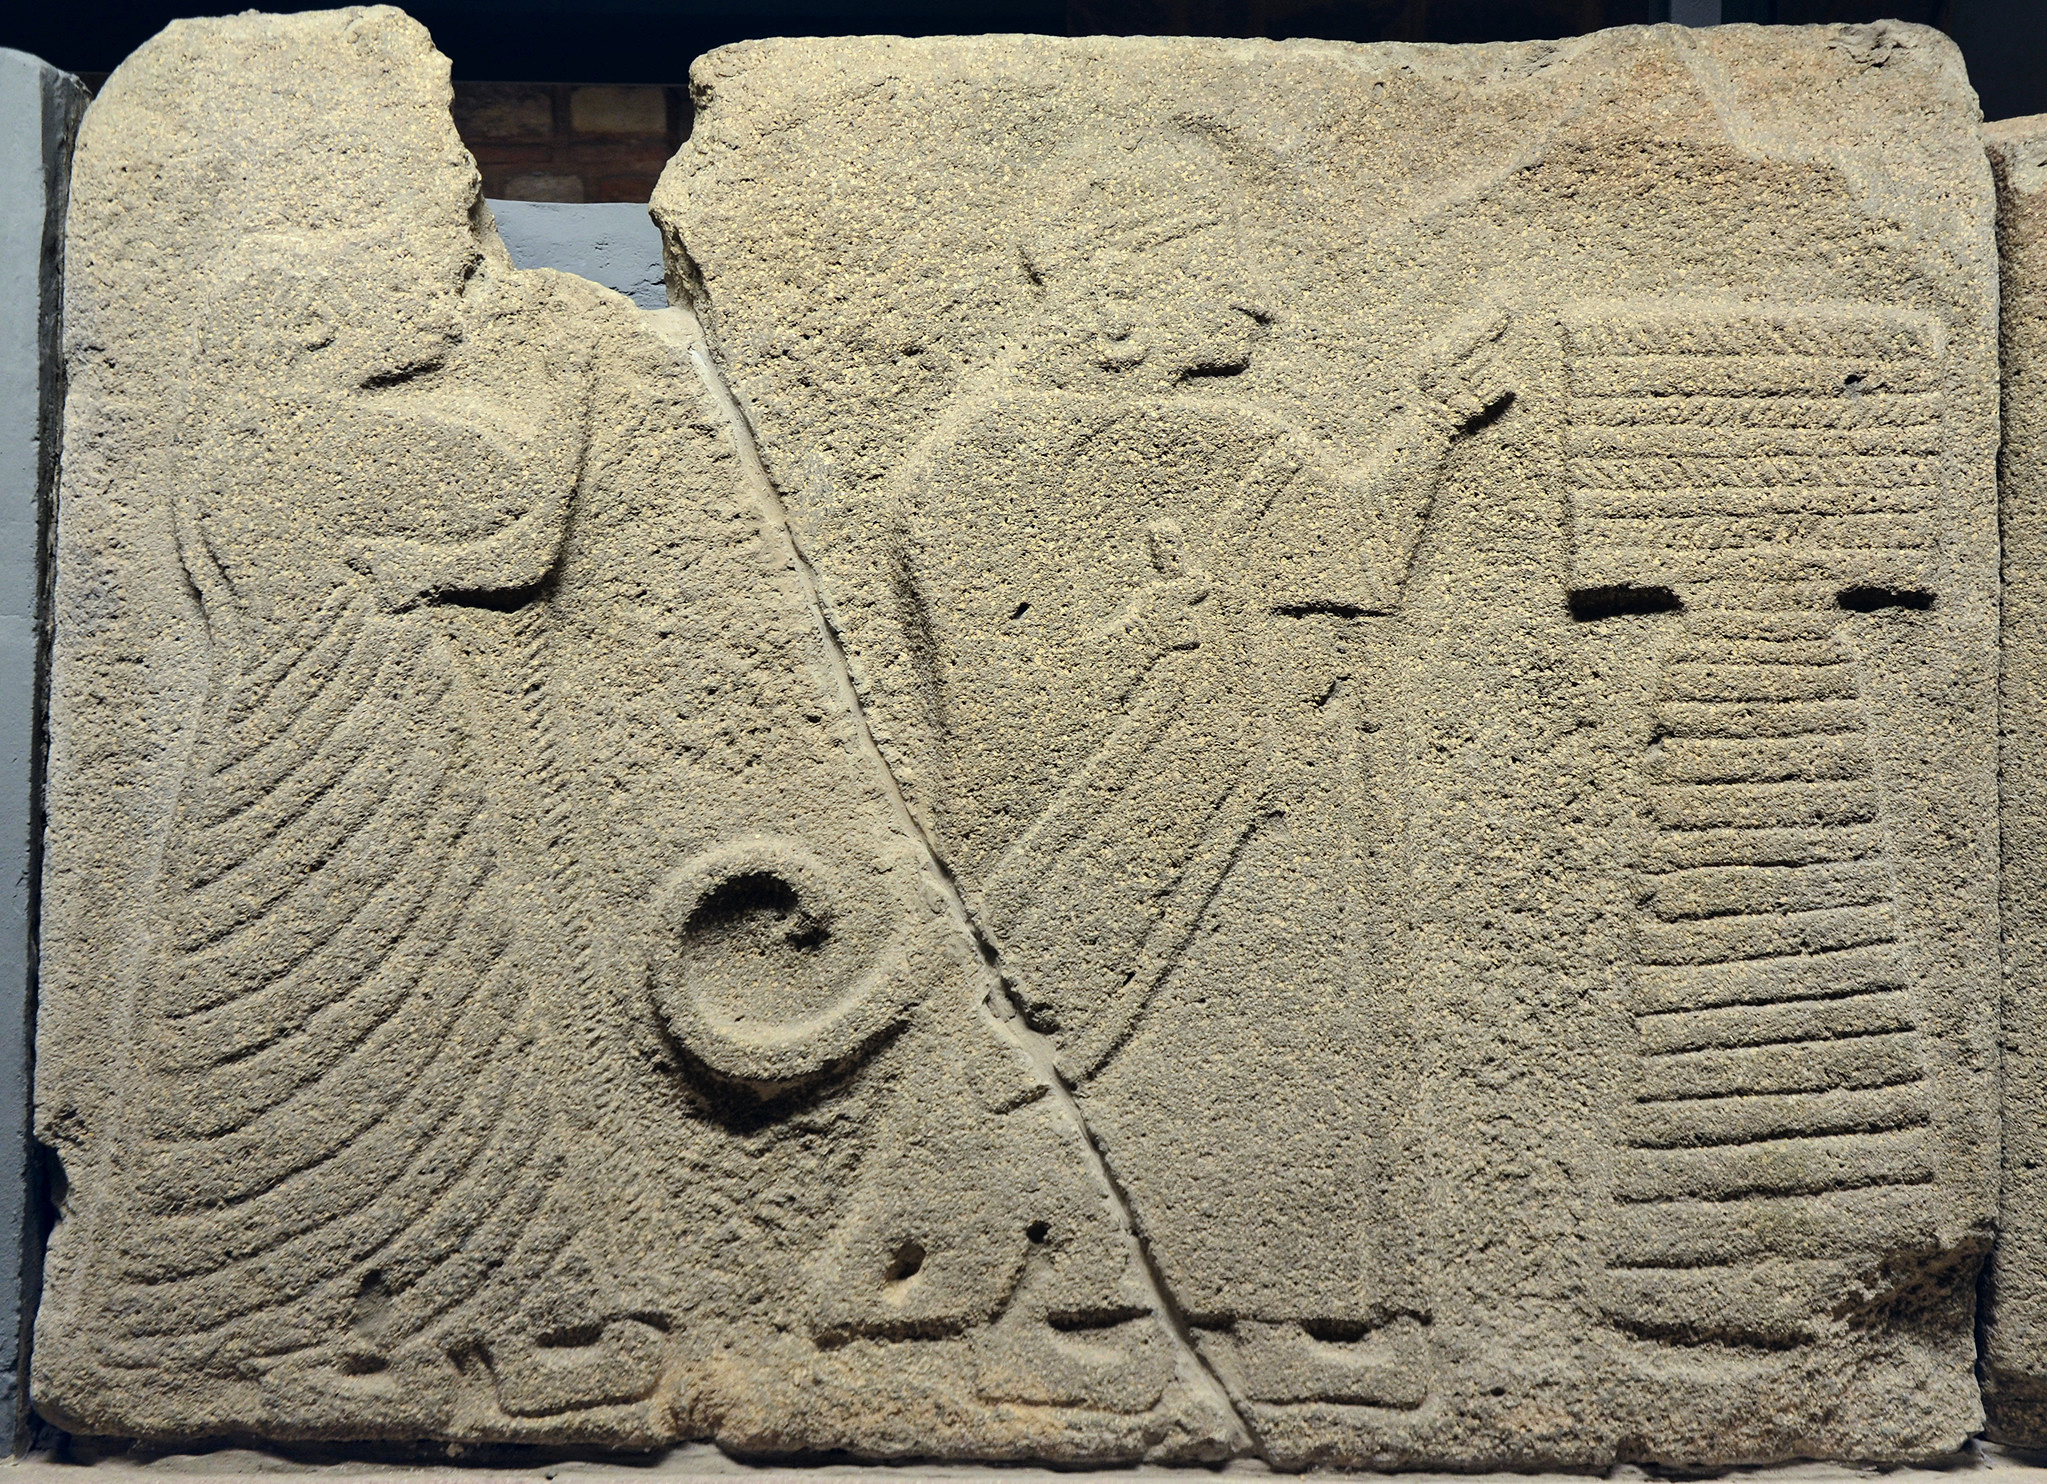 Hittite Orthostat with King and Queen (Illustration) - World History  Encyclopedia